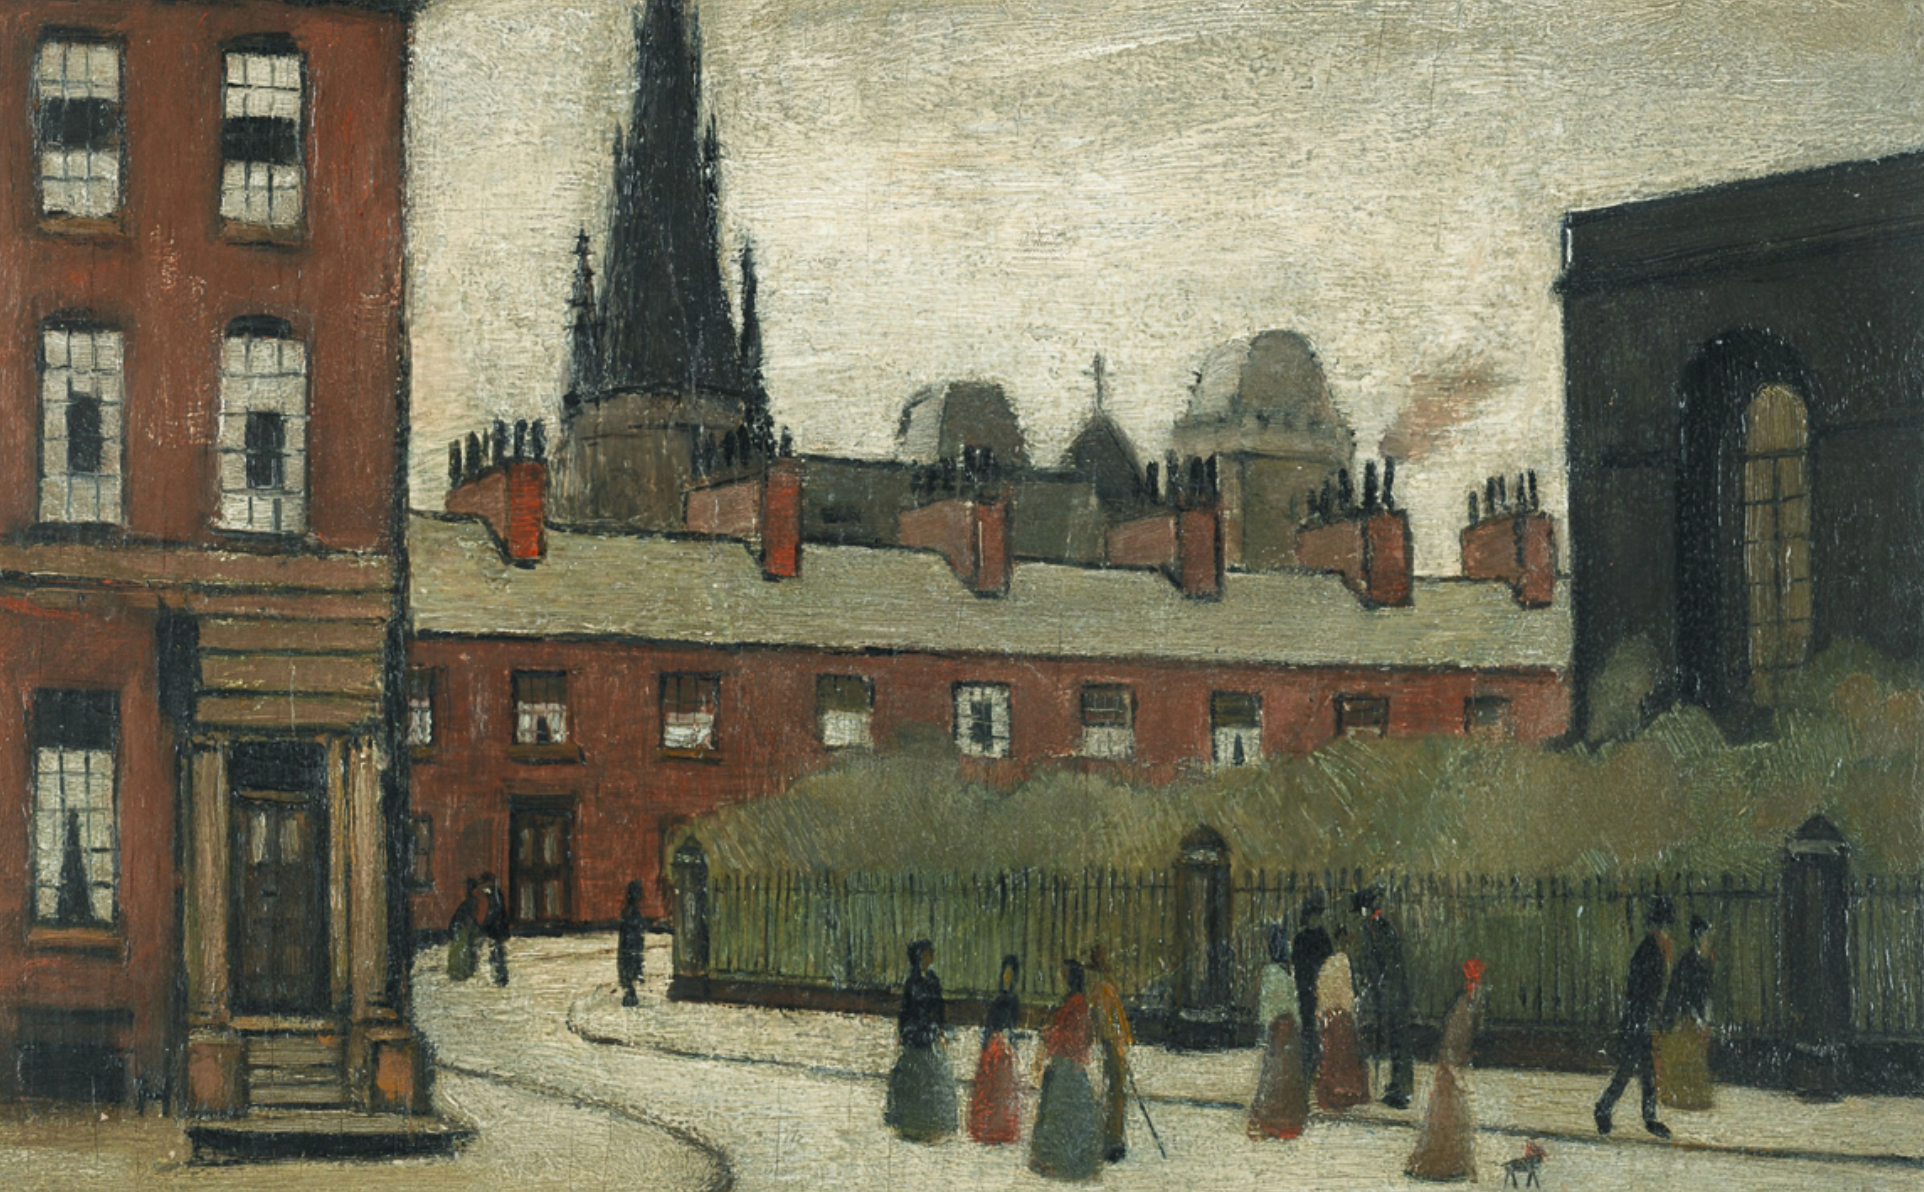 The Spire (1949) by Laurence Stephen Lowry (1887 - 1976), English artist.The Spire (1949) by Laurence Stephen Lowry (1887 - 1976), English artist.The Spire (1949) by Laurence Stephen Lowry (1887 - 1976), English artist.